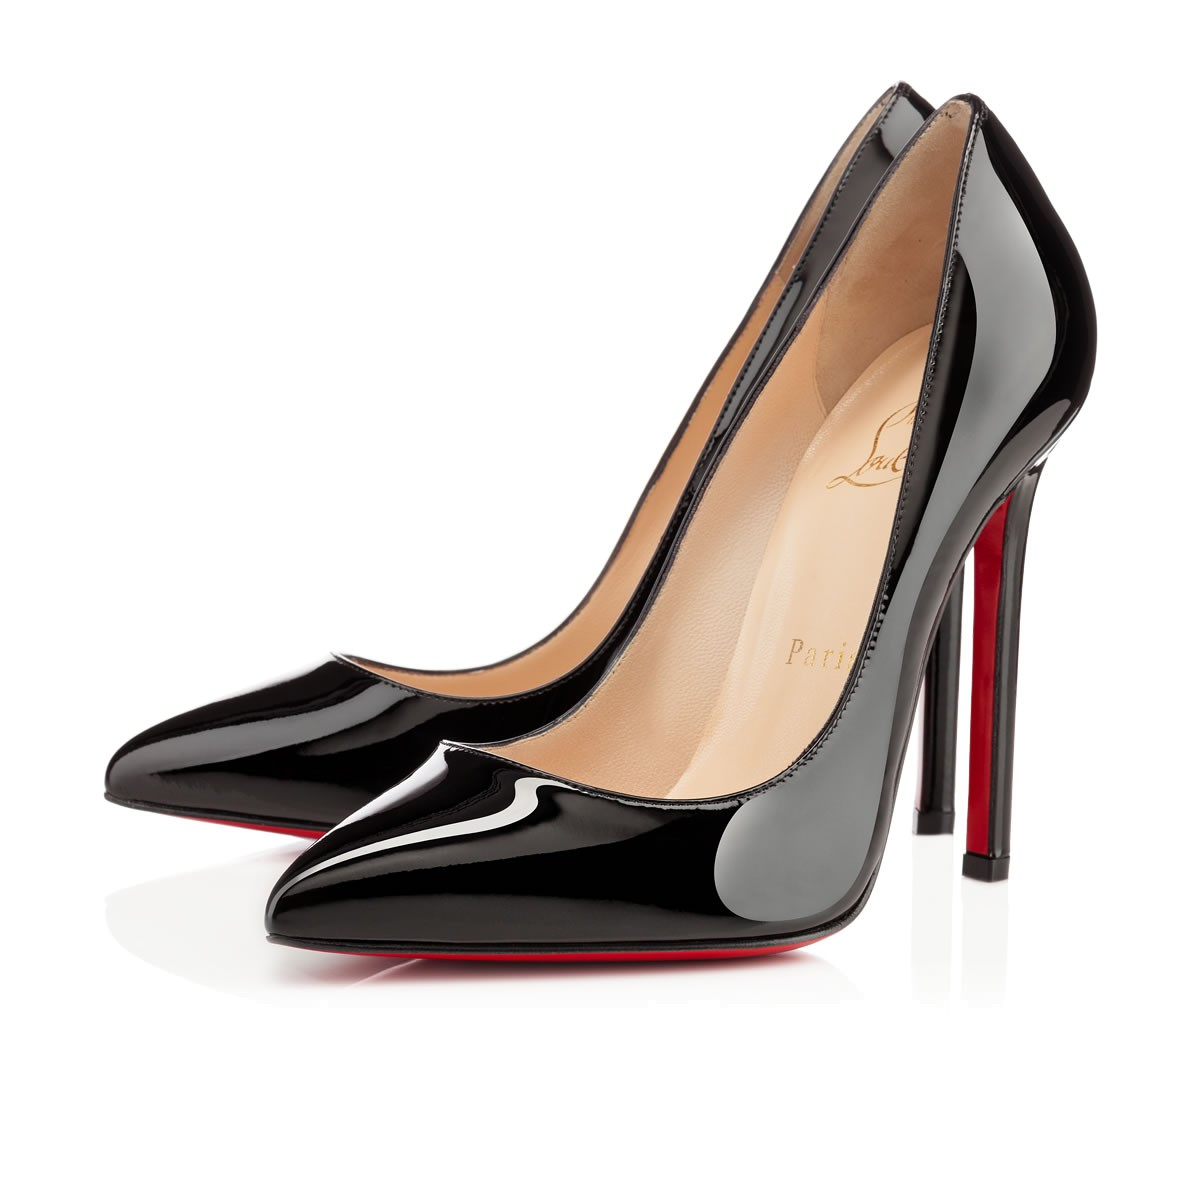 Design Museum, Adopt an Object, Pigalle, Year 2004, Designer Christian Louboutin